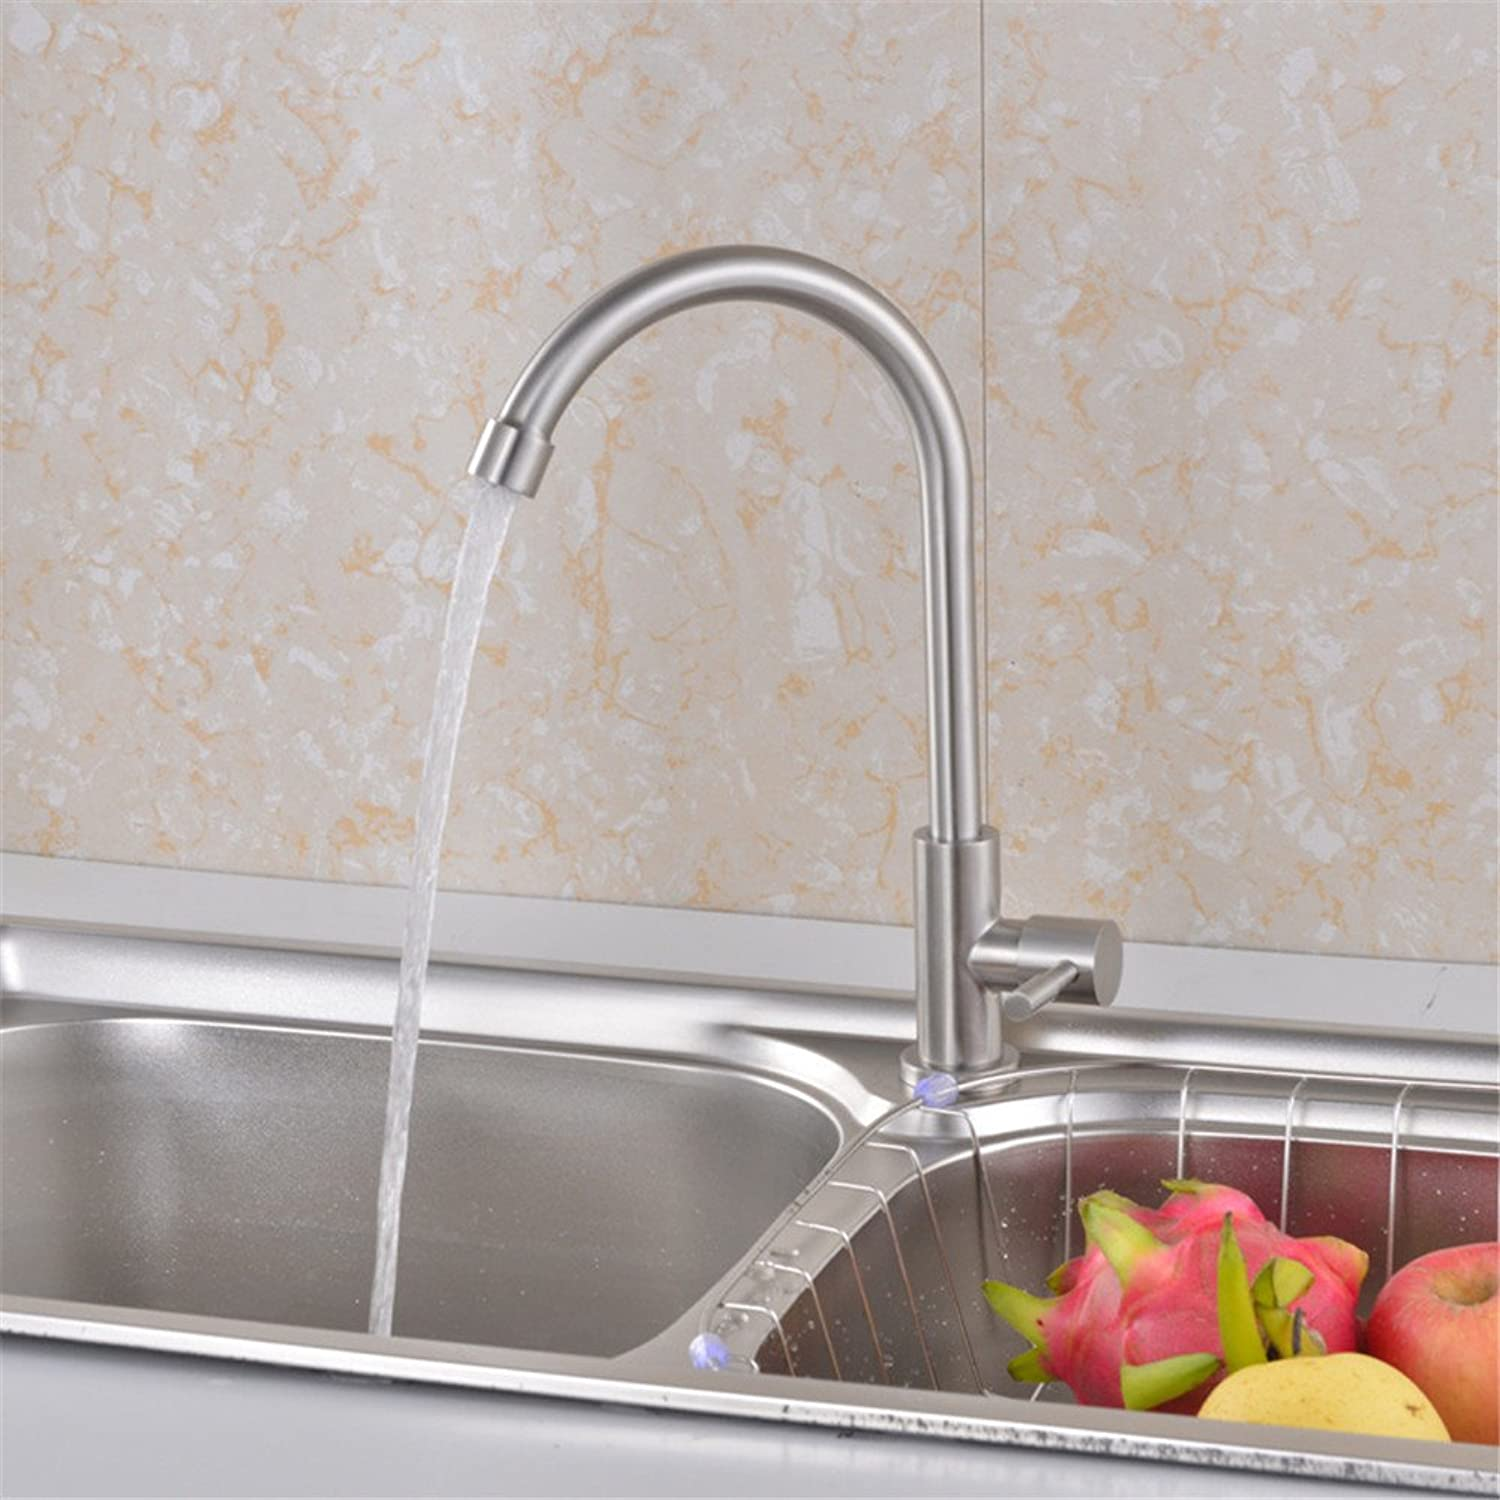 Bijjaladeva Antique Bathroom Sink Vessel Faucet Basin Mixer Tap Young porcelain 67301 single cold water to wash dishes kitchen faucet 304 Stainless Steel Straight drinking safe tap